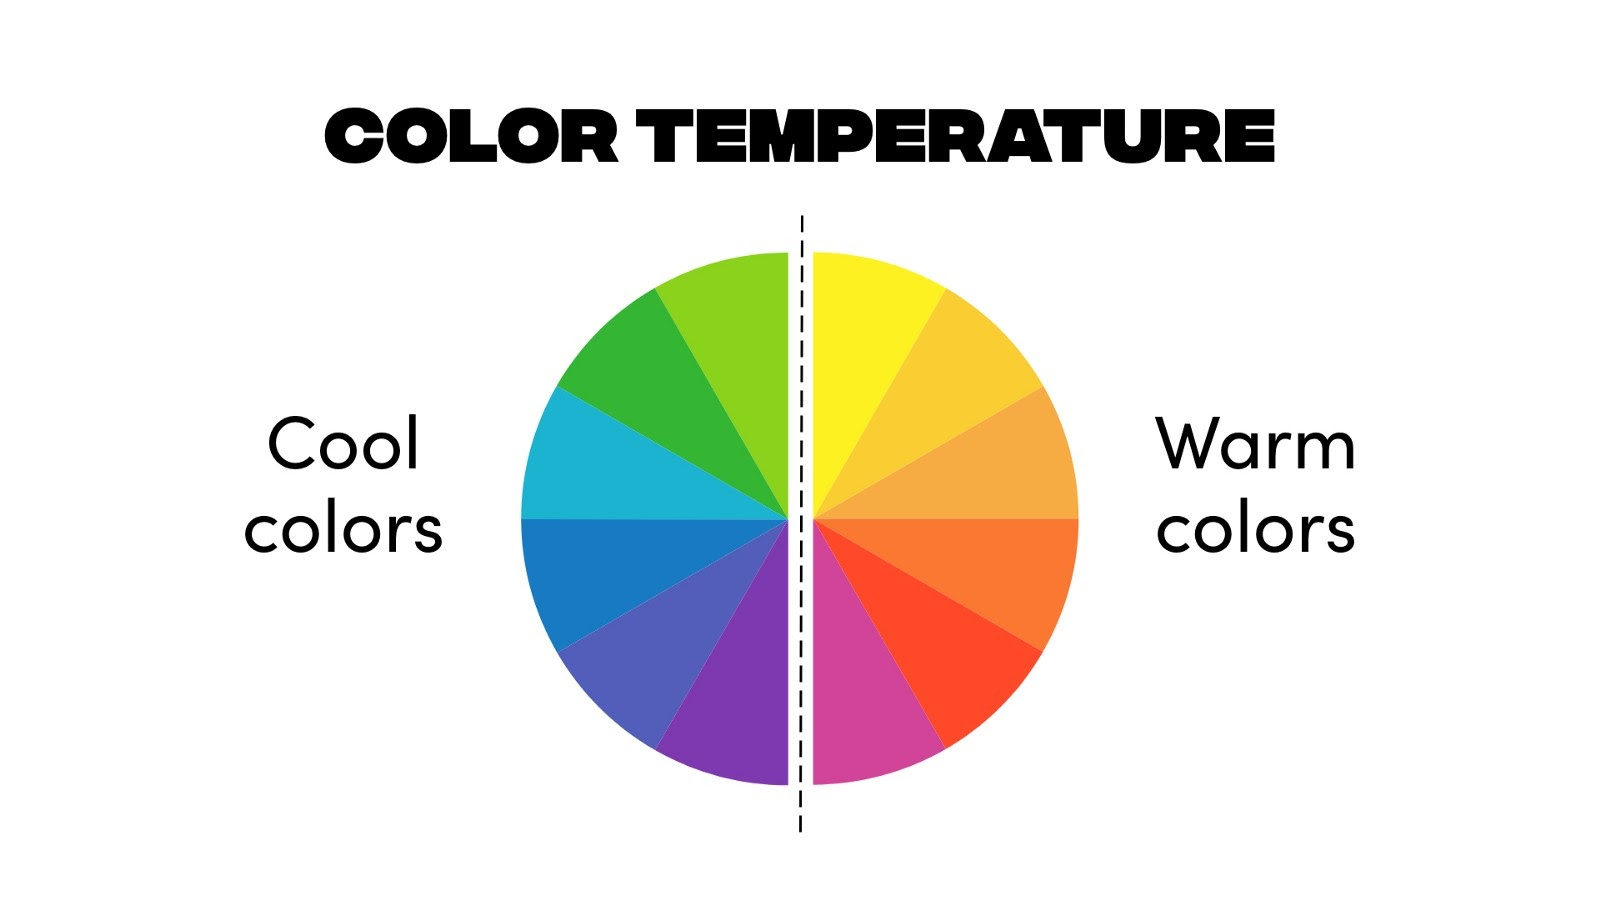 Cool vs warm colors on the color wheel